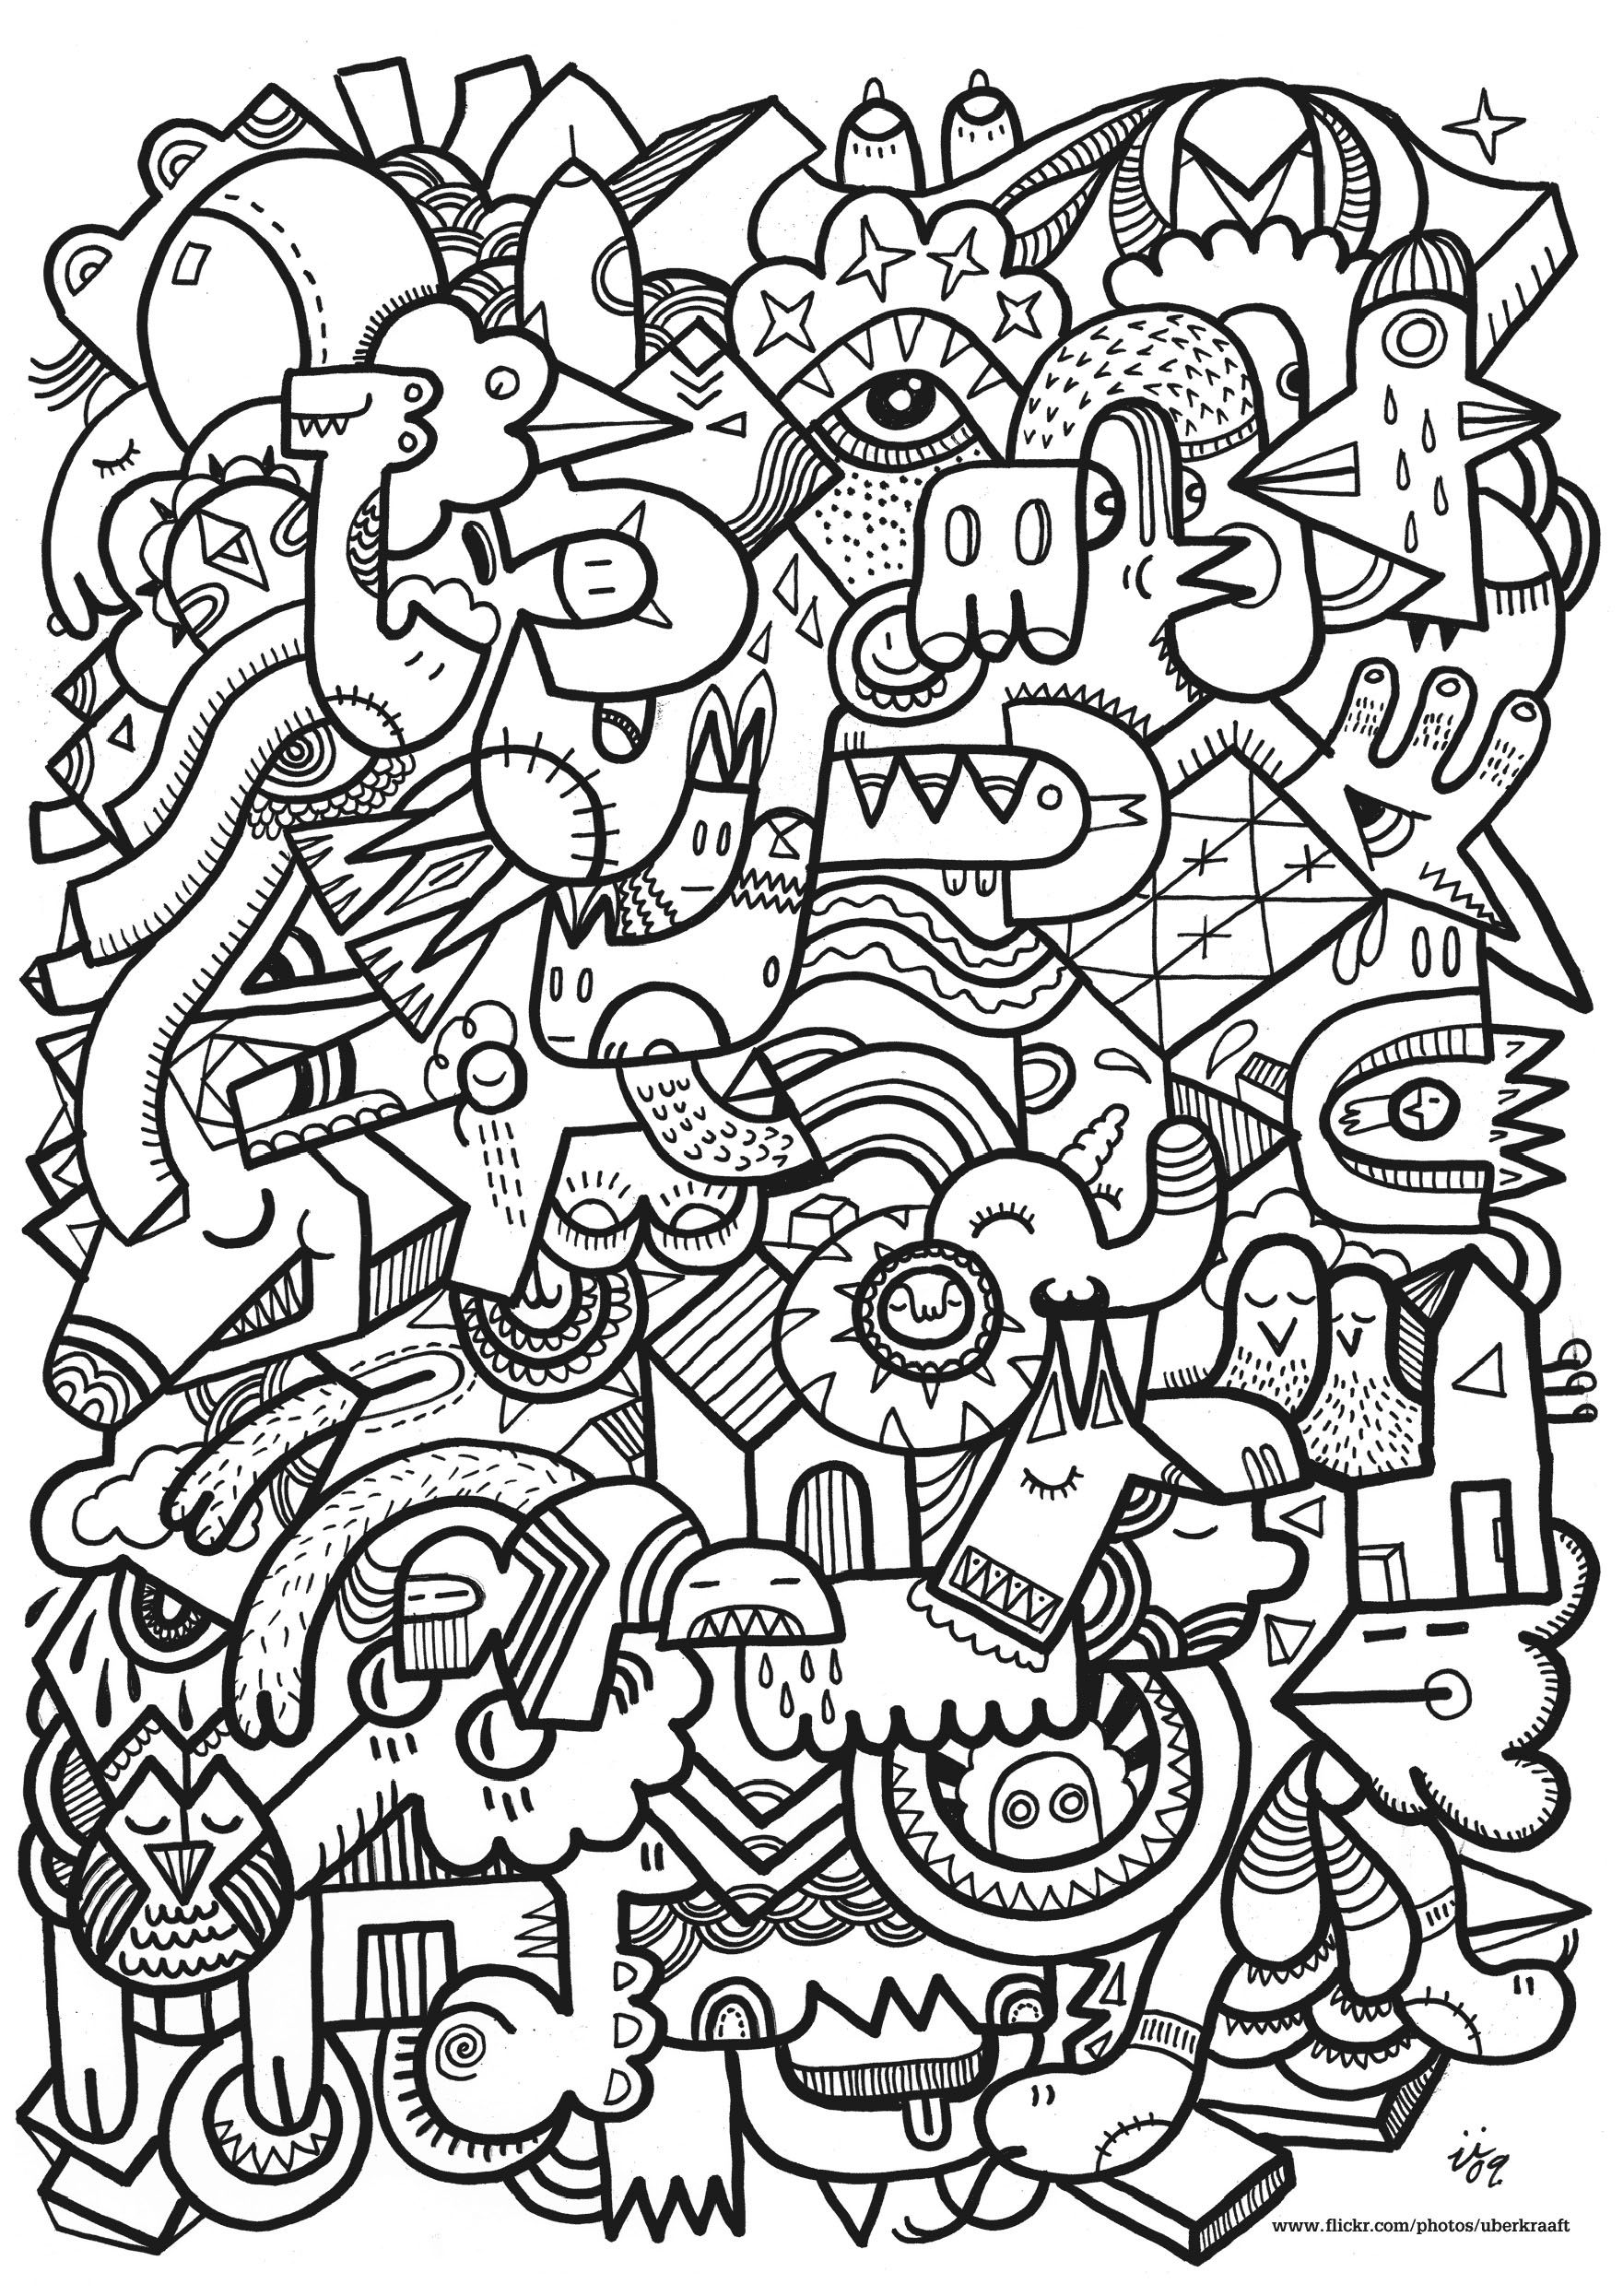 Complex Drawing With Different Doodle Creatures Unclassifiable